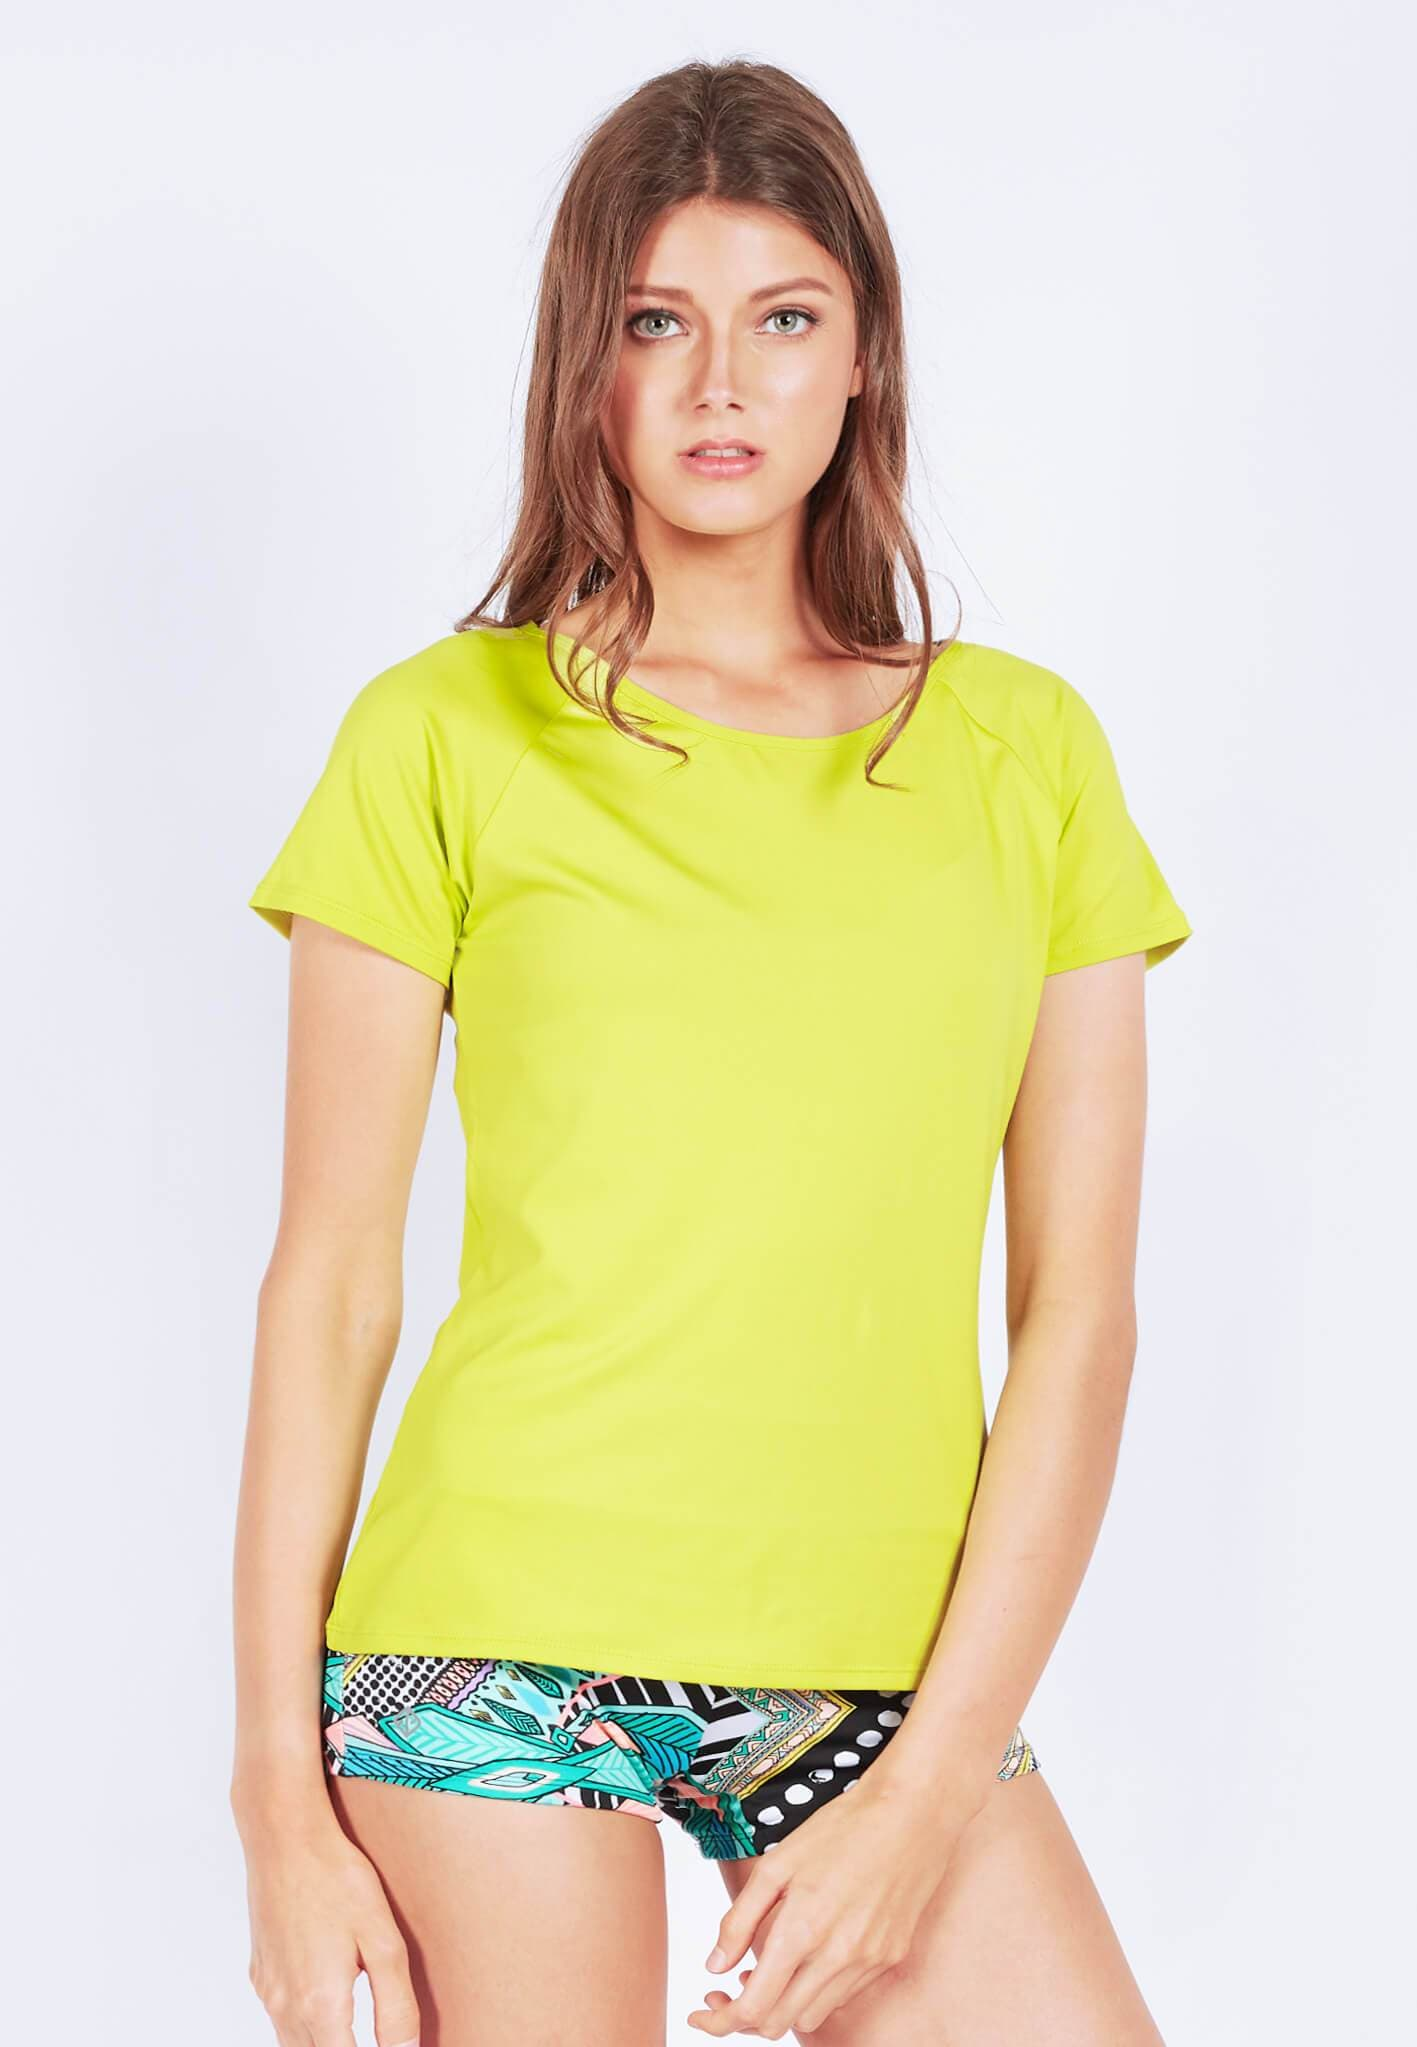 Power-Up Tee in Lime Yellow (S - XL)